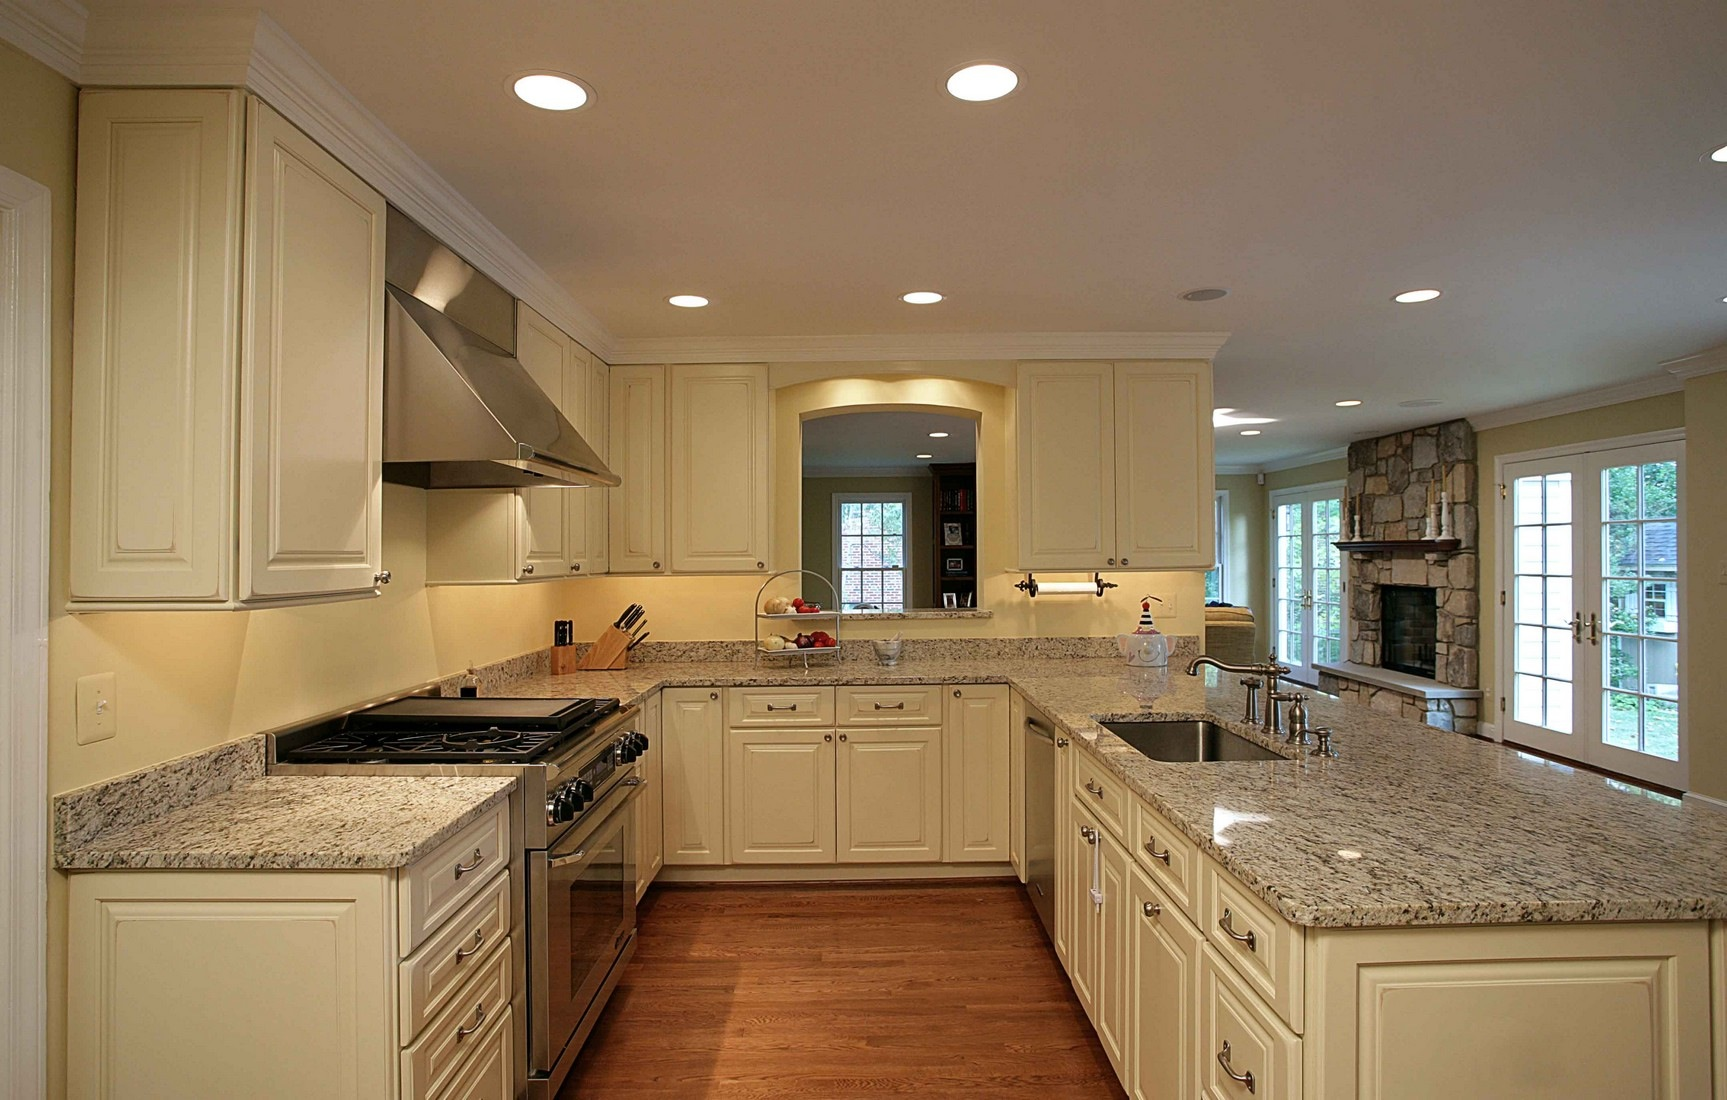 Kitchen Remodeling In Maryland Exterior Interior Amazing Chevy Chase Maryland Home Remodeling Design Inspiration